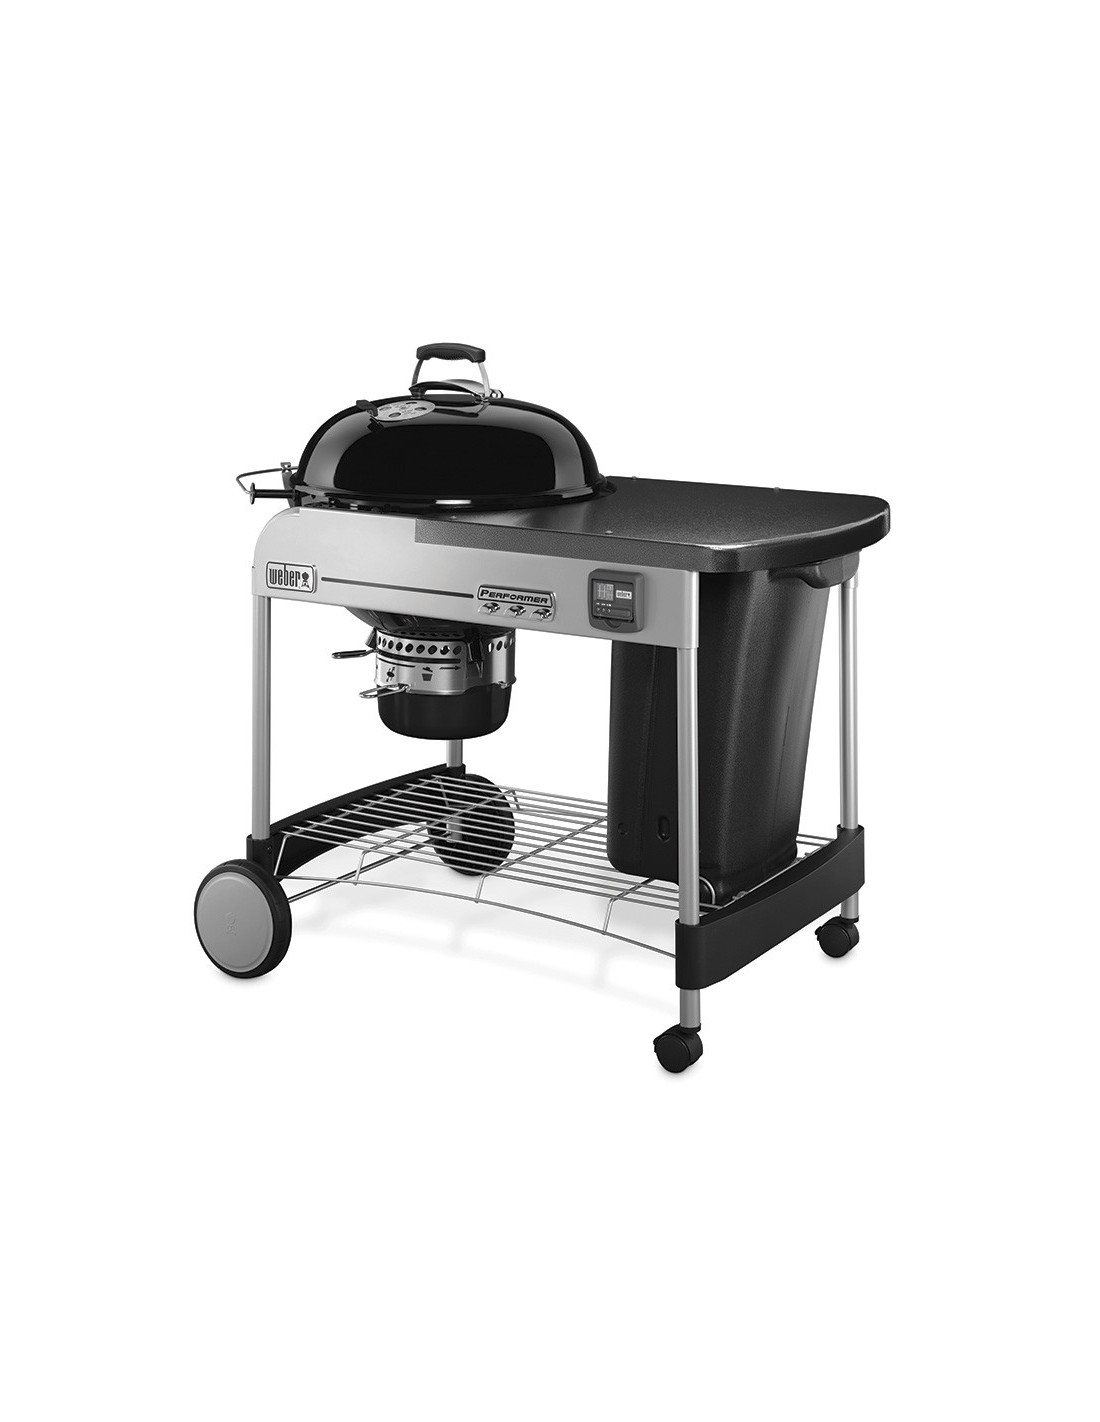 barbecue weber performer premium 57 cm barbecue charbon